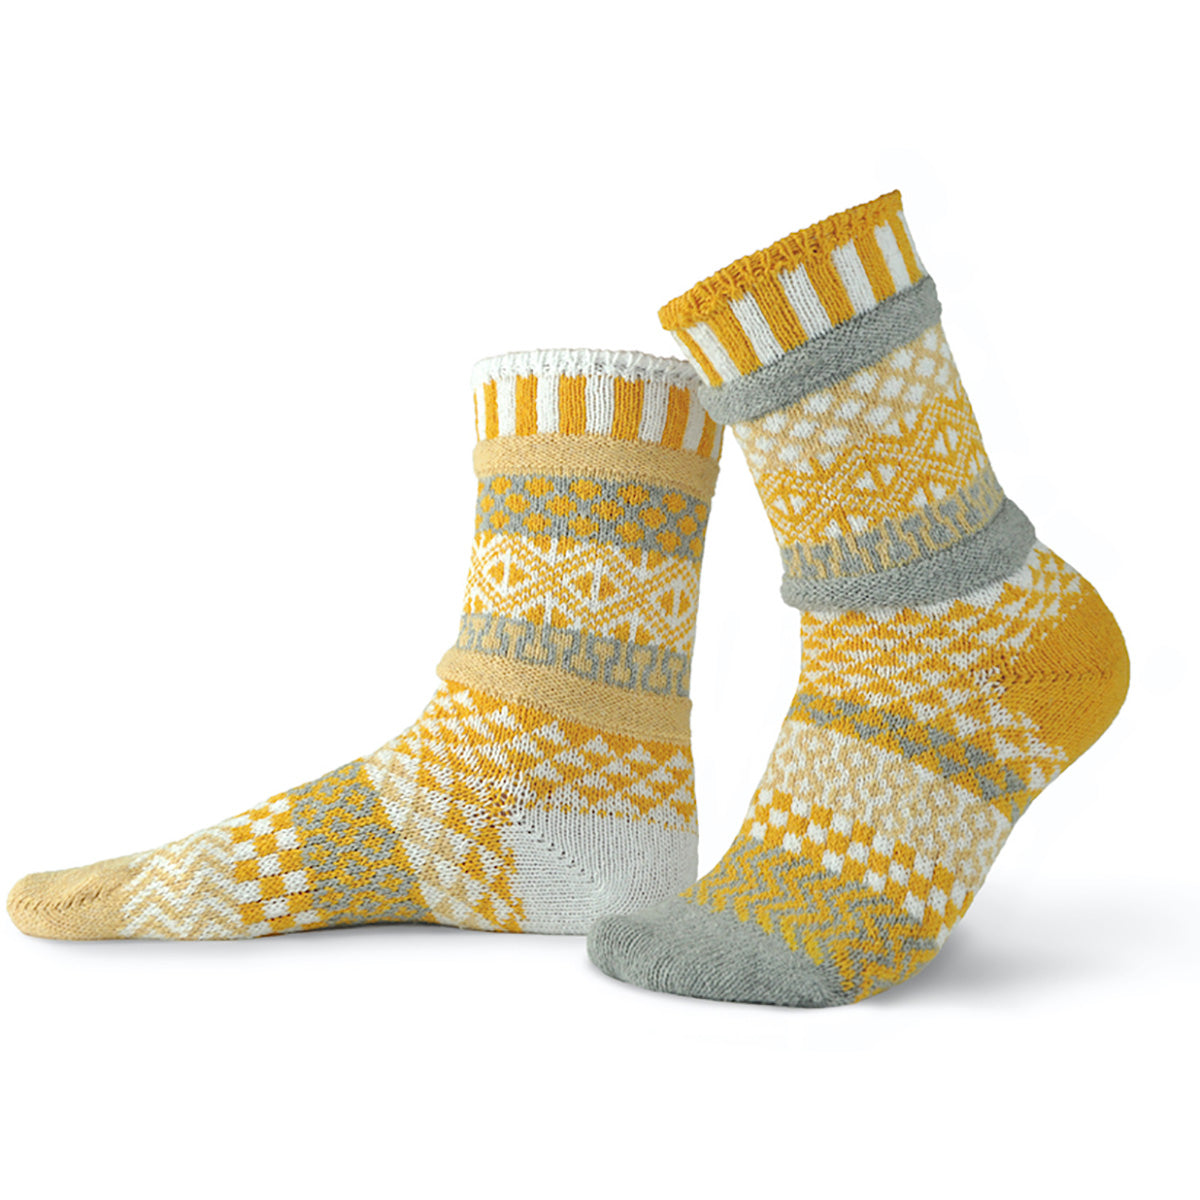 Yellow and gray mismatched socks with a pattern of geometric shapes, stripes and checks.